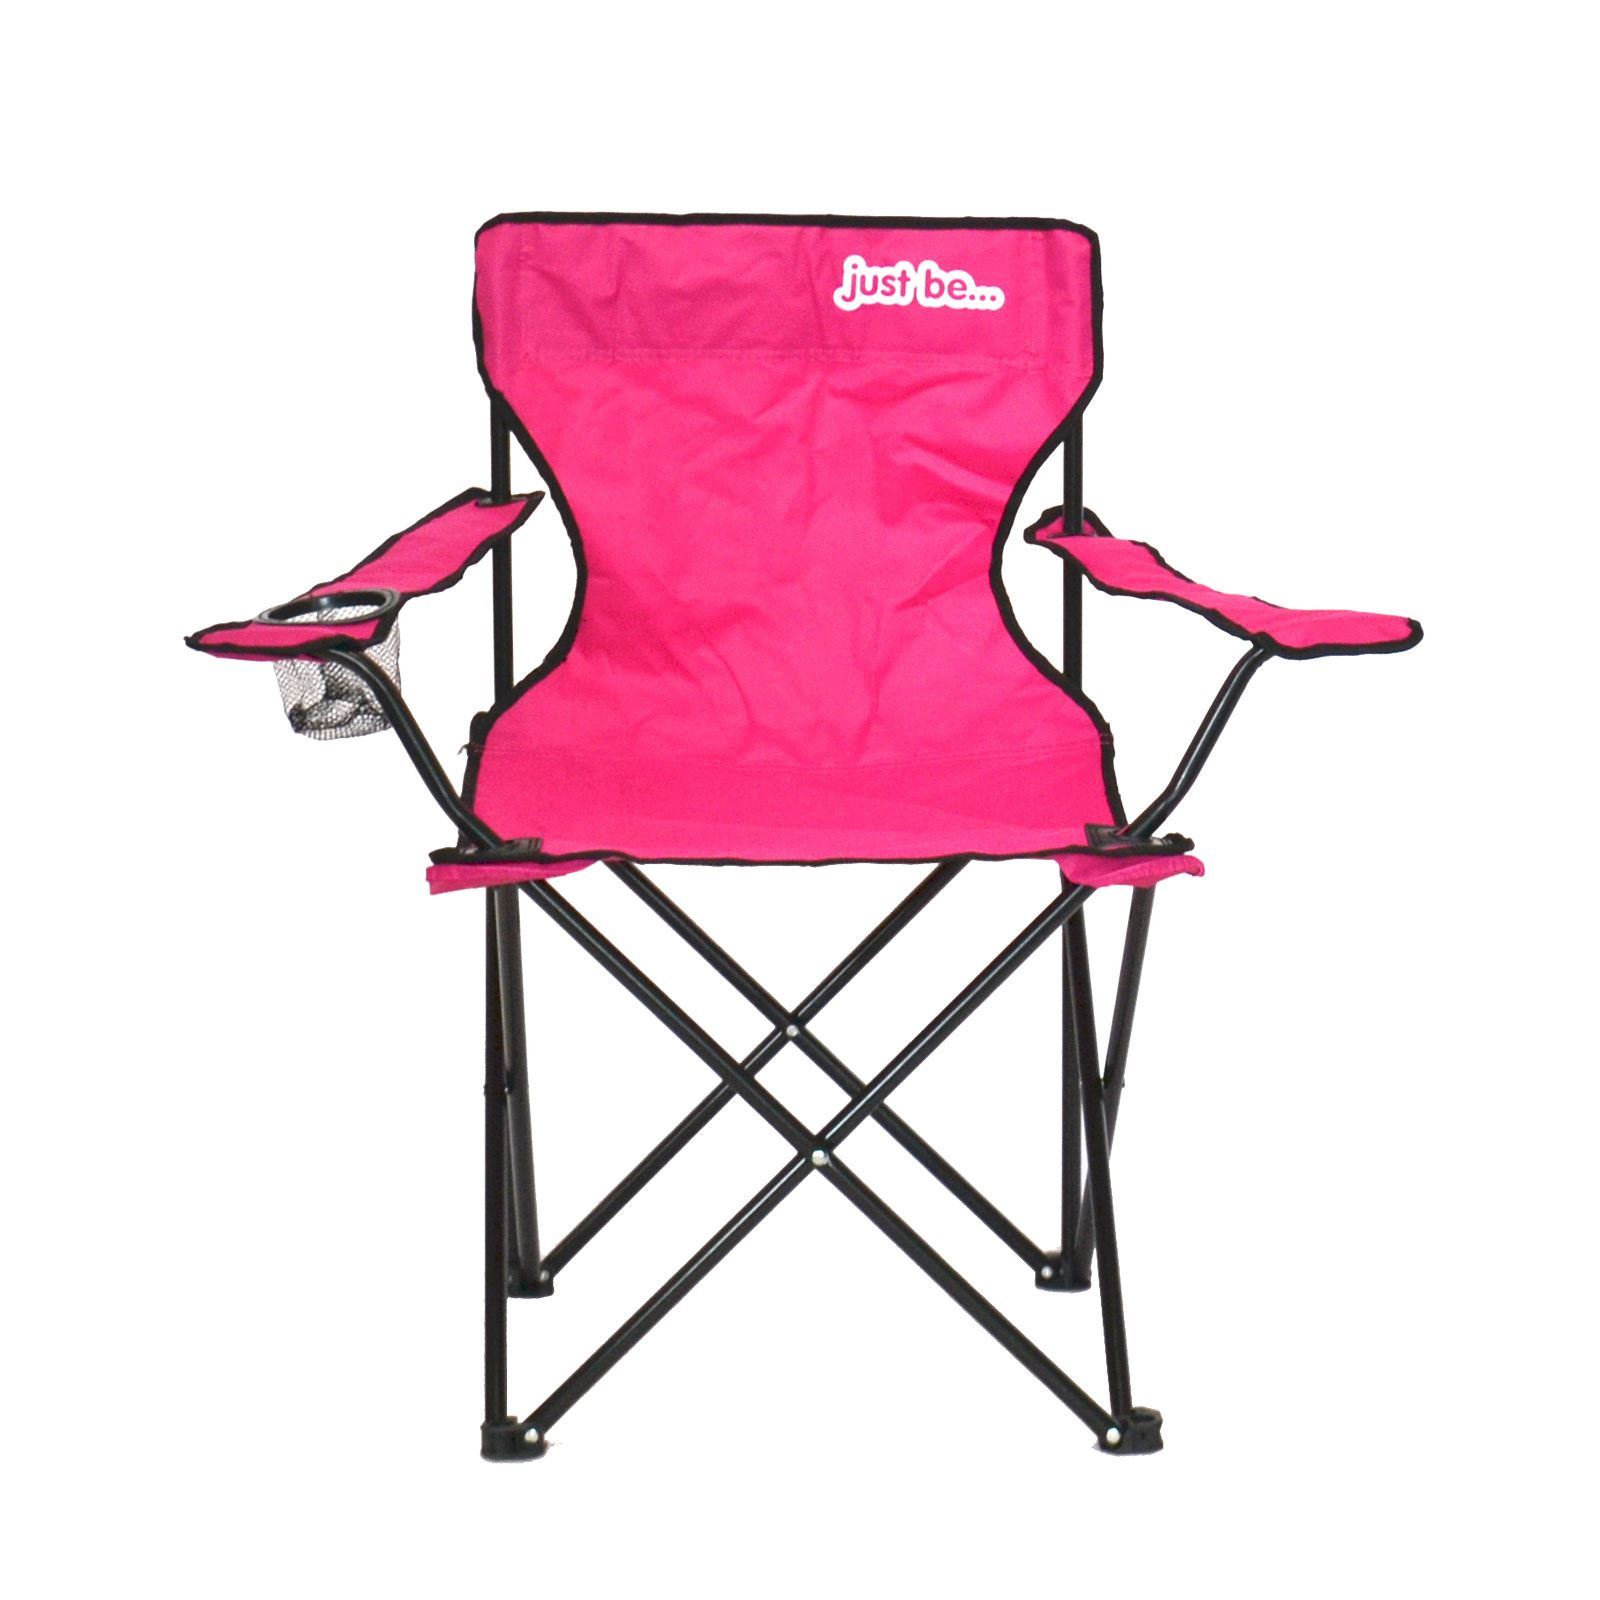 Returned Stock Camping Chair PINK WITH BLACK TRIM